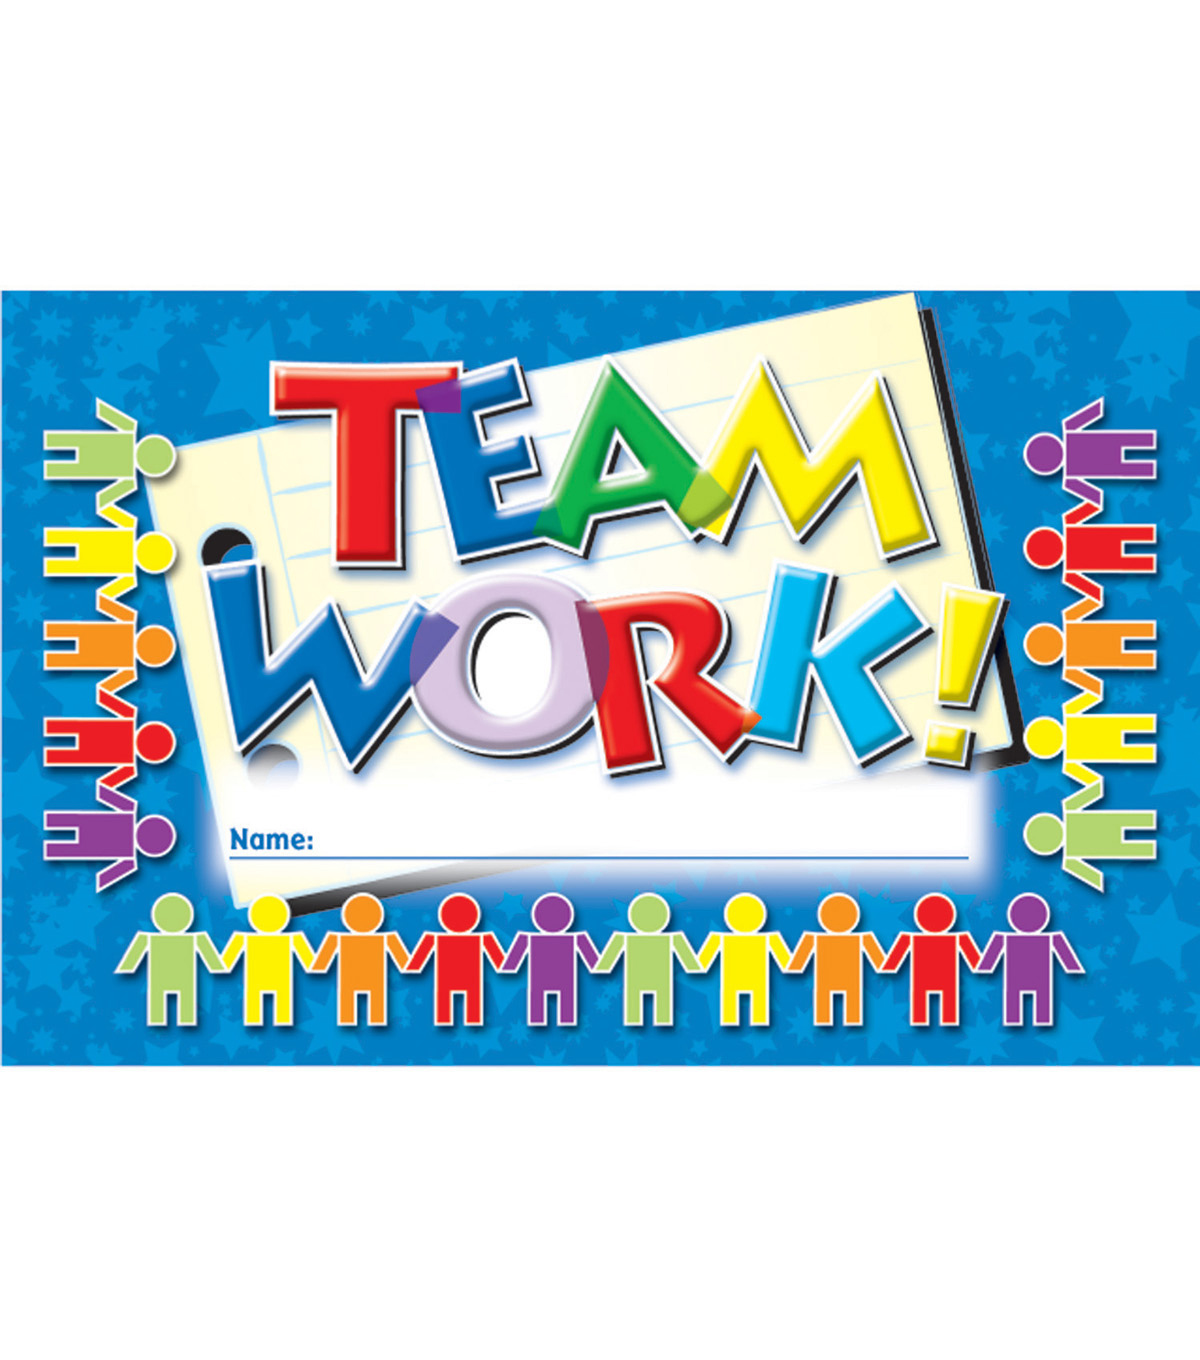 North Star Teacher Resource Teamwork Punch Cards, 36 Per Pack, 6 Packs